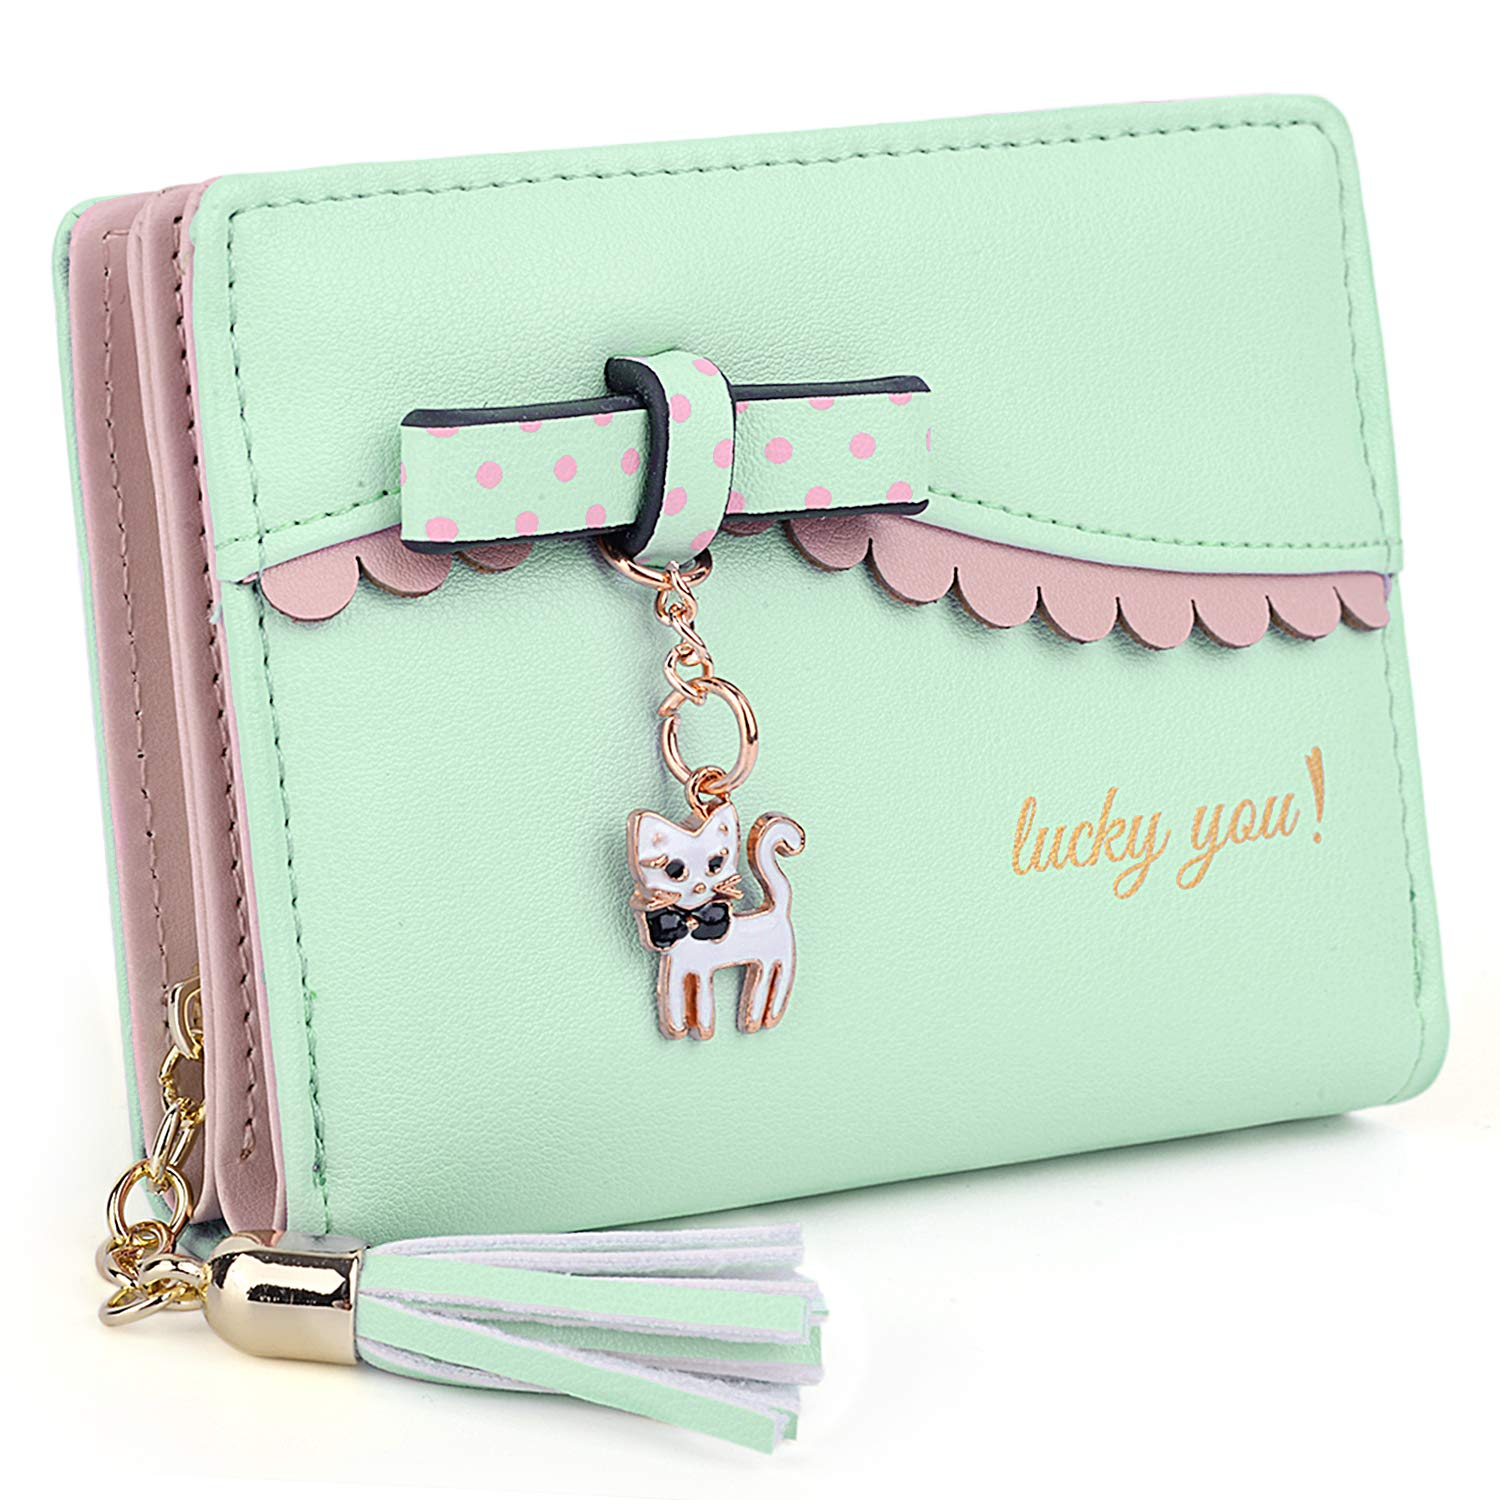 CDM product UTO Women's Wallet PU Leather Card Holder Organizer Girls Small Cute Coin Purse big image